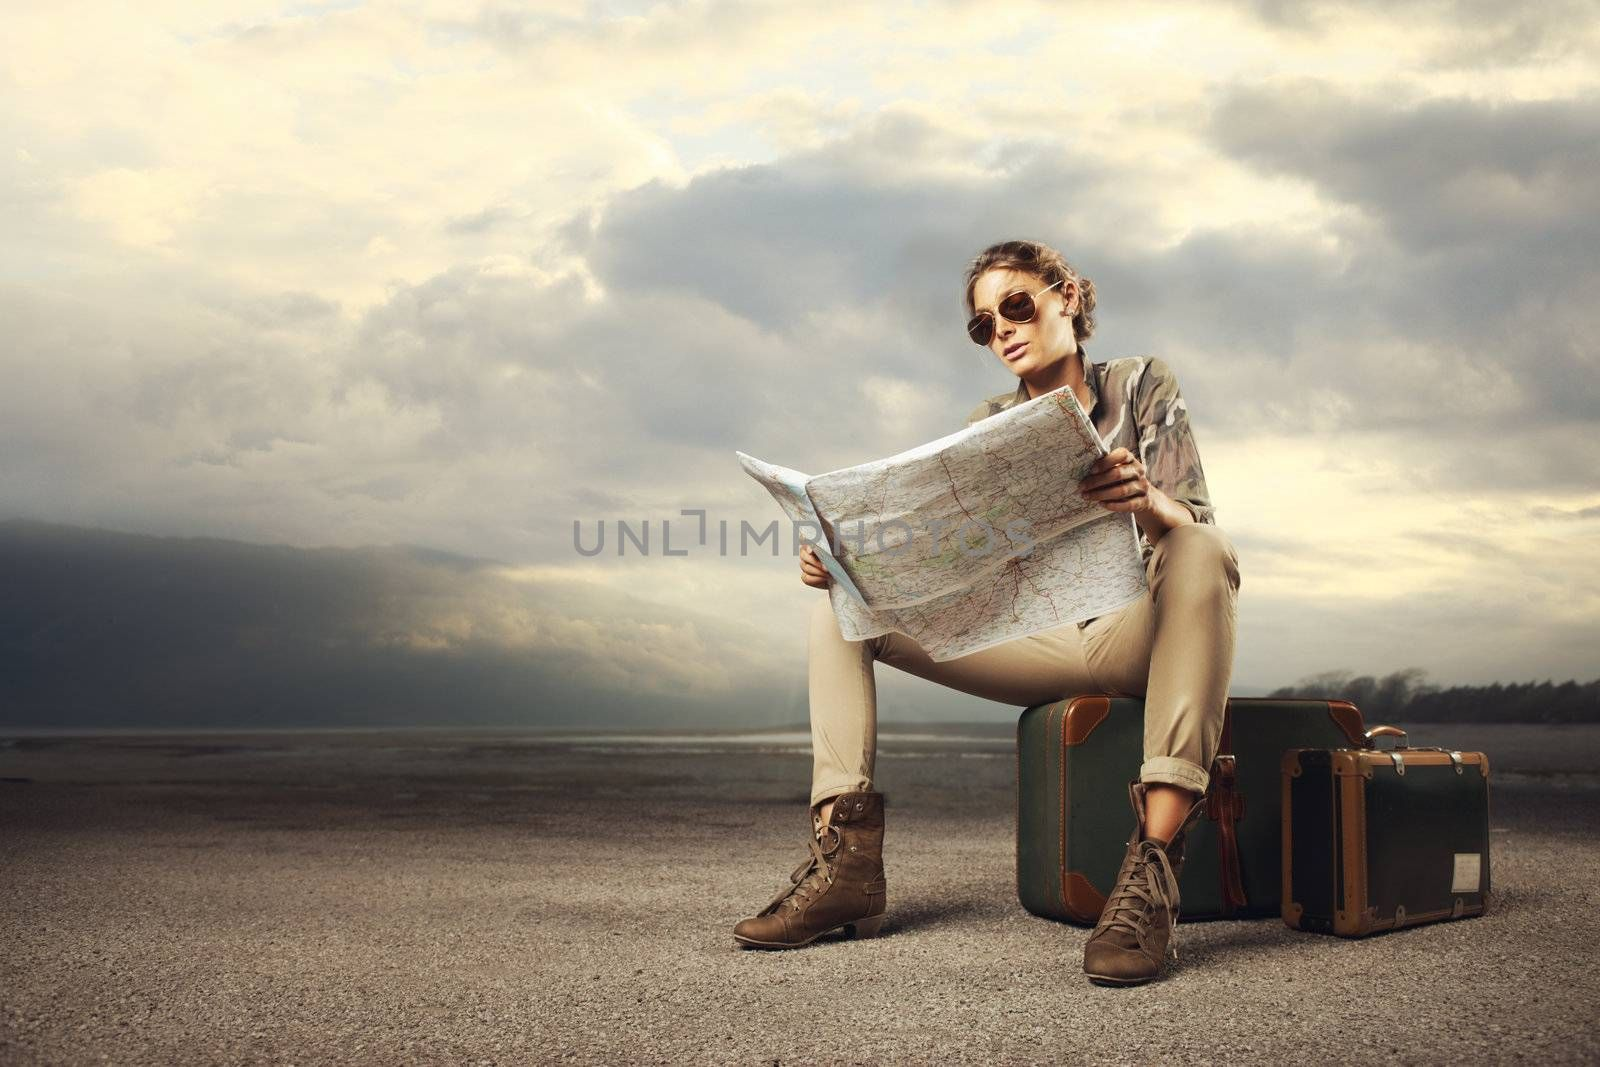 Beautiful young woman sitting on a suitcase